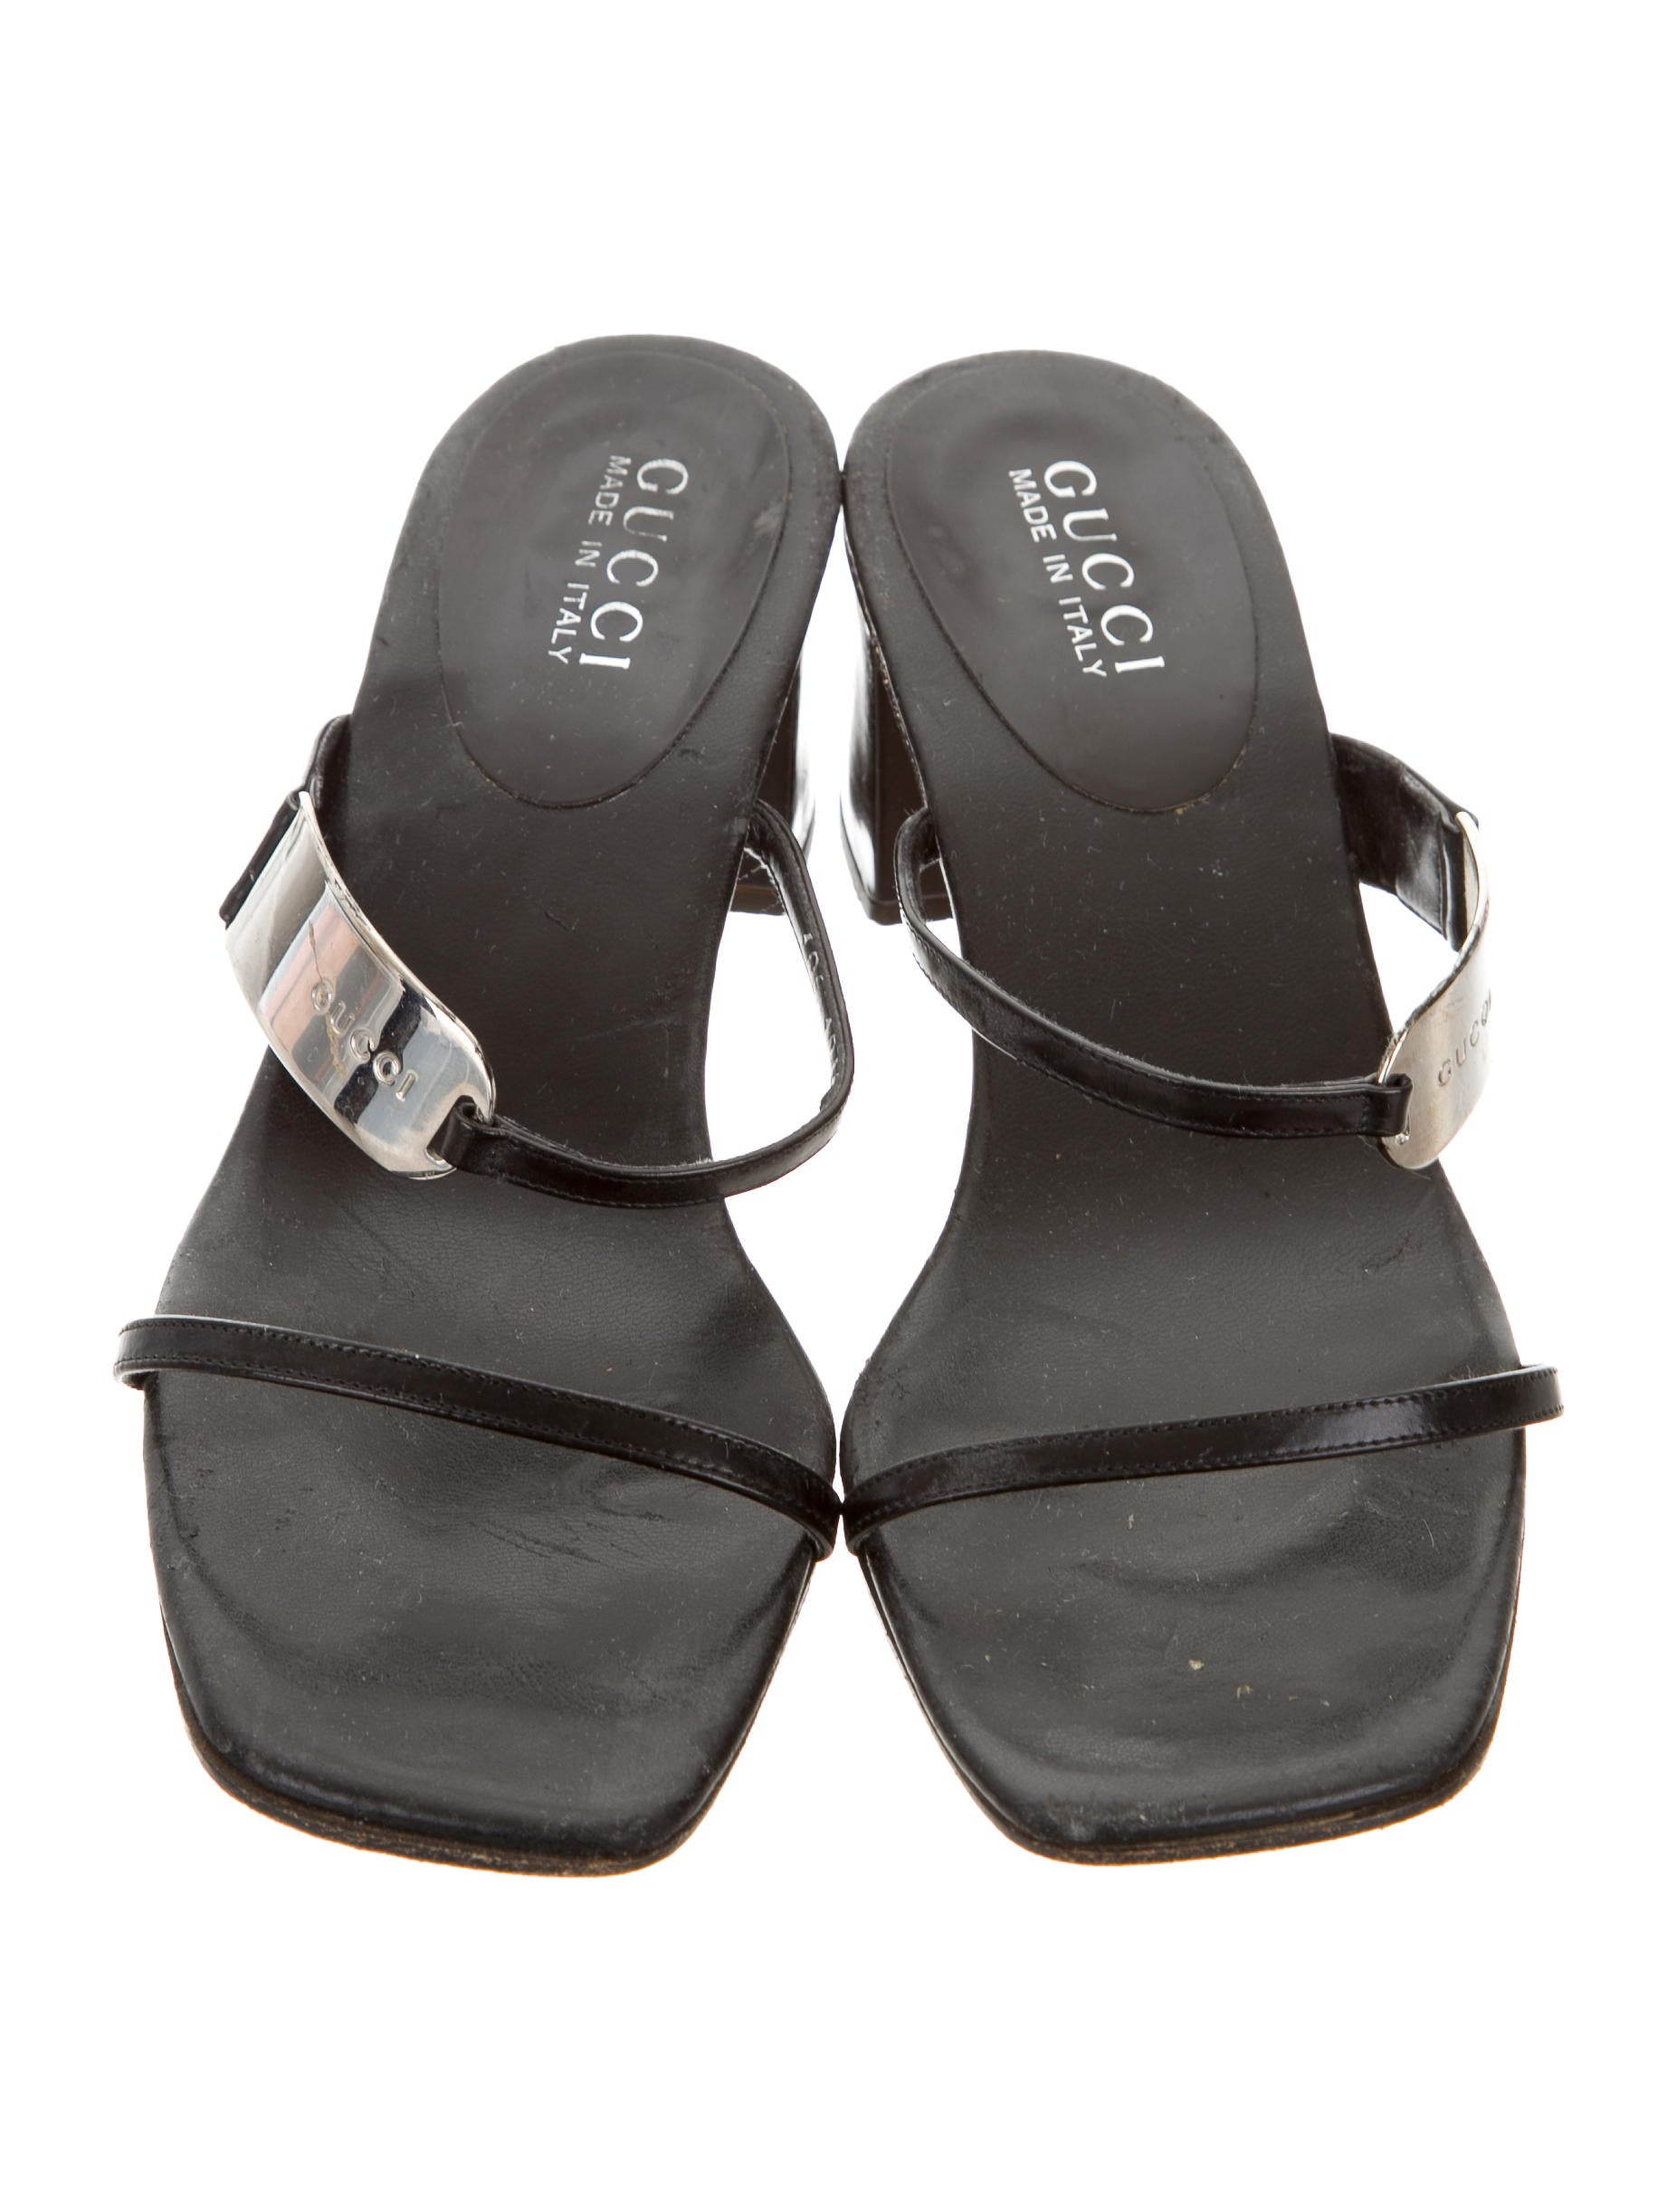 Gucci Leather Slide Sandals - Shoes - GUC136073 | The RealReal